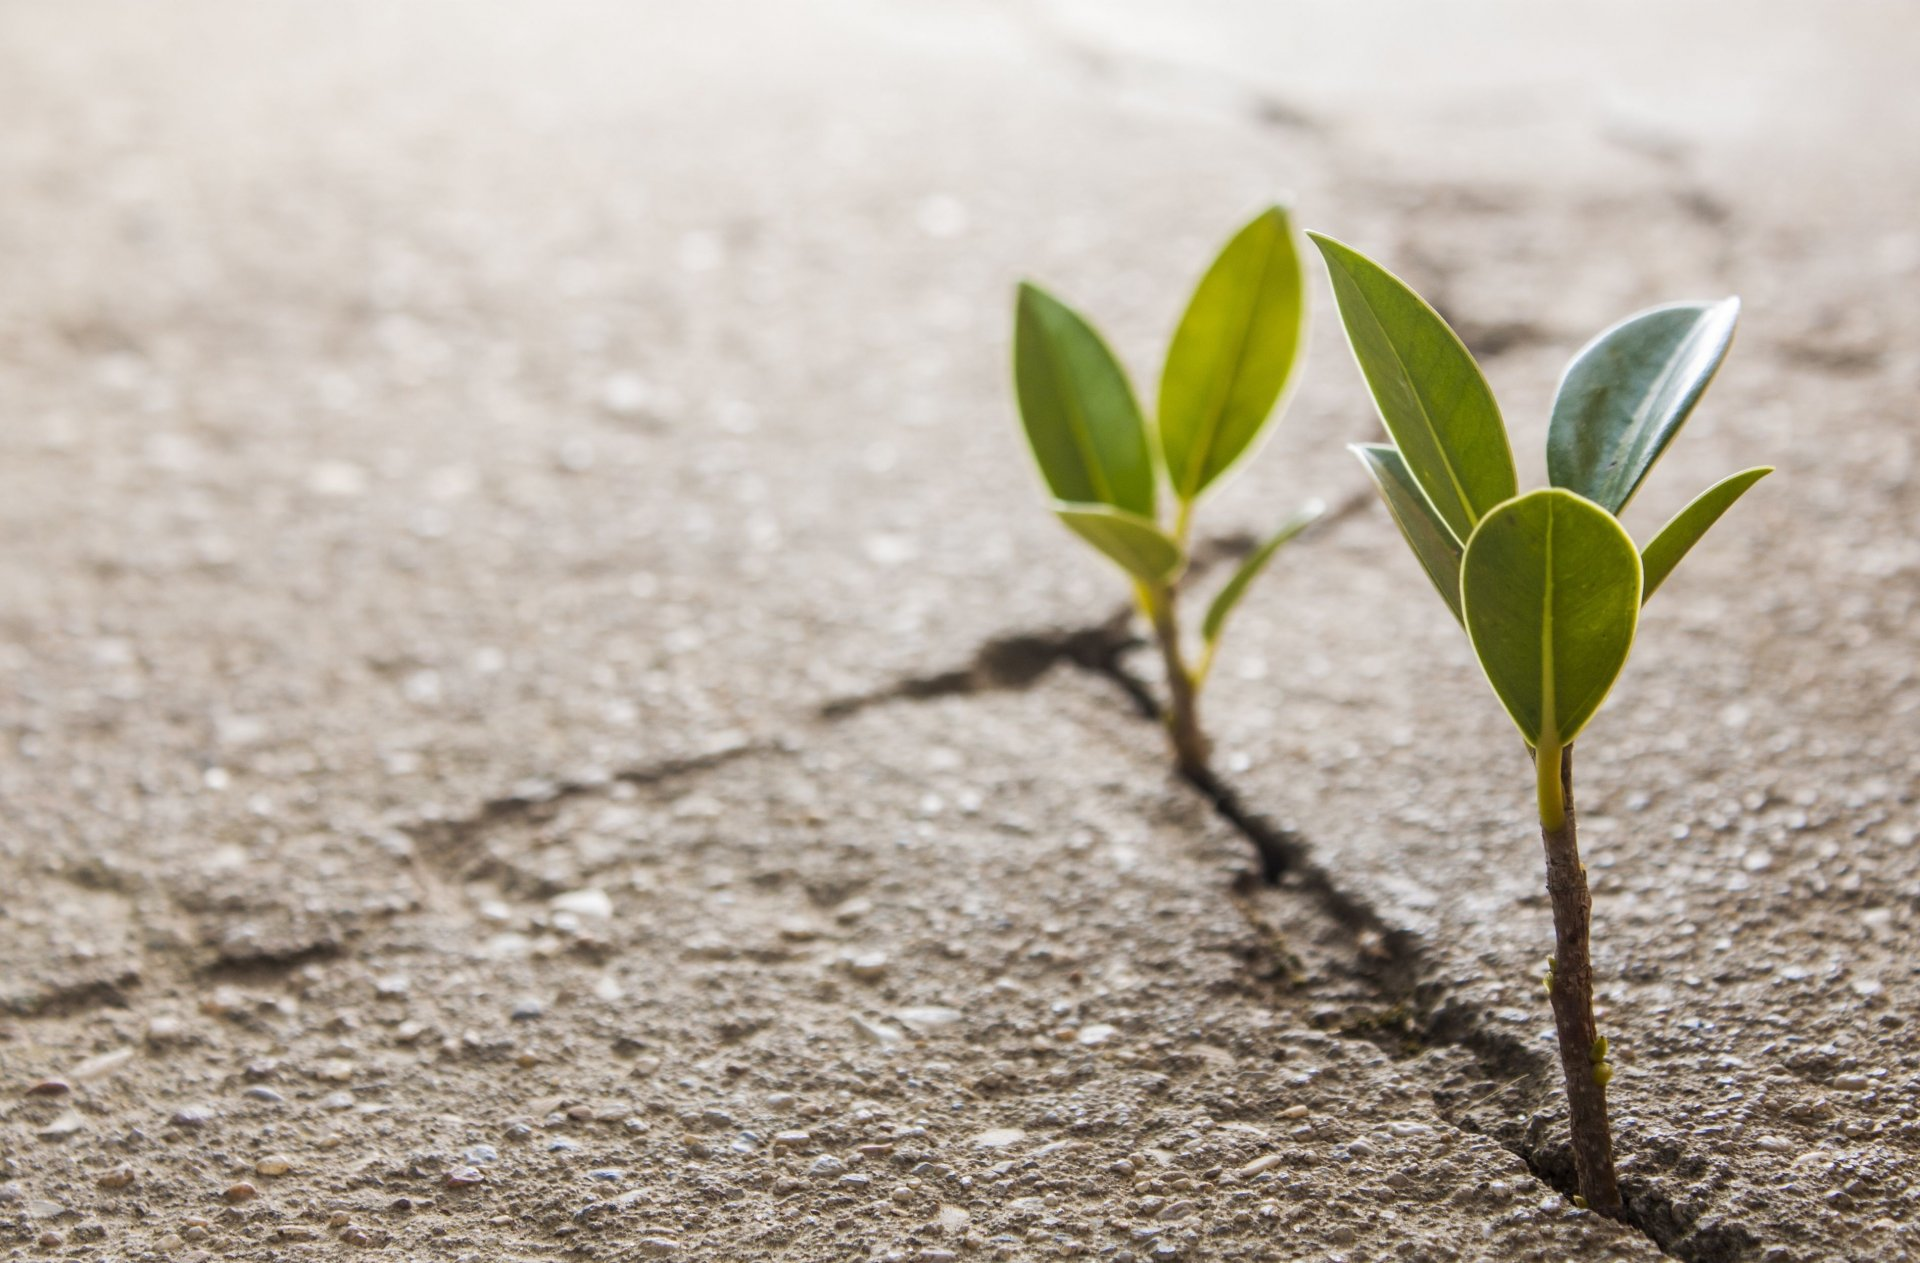 Our Services Close Up Plant Leaf The Germ Leaves Crack - Plant Growing In Concrete , HD Wallpaper & Backgrounds